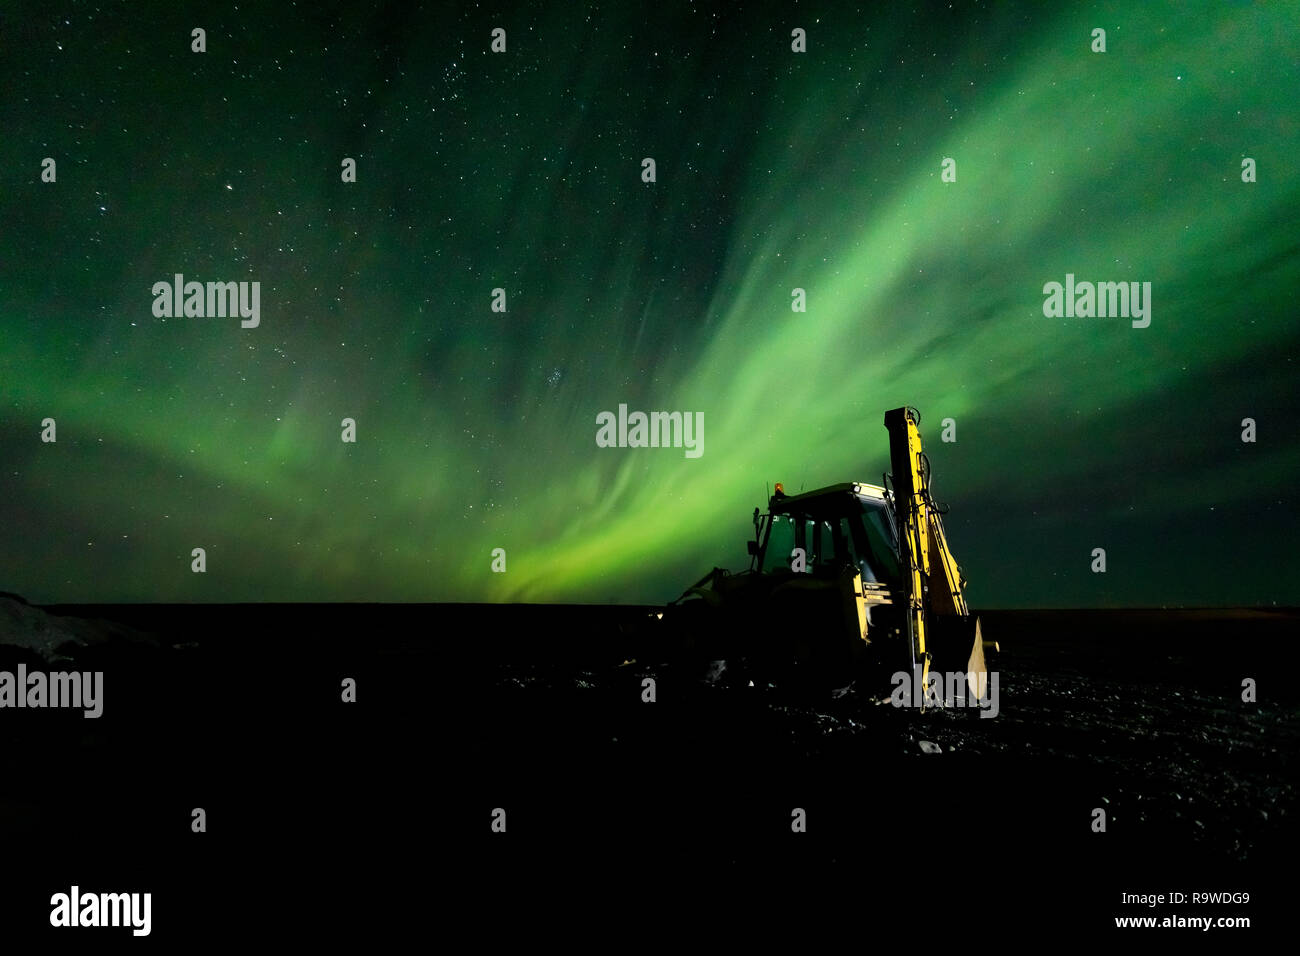 A frontloader is sidelit while the northern lights is visible overhead. - Stock Image